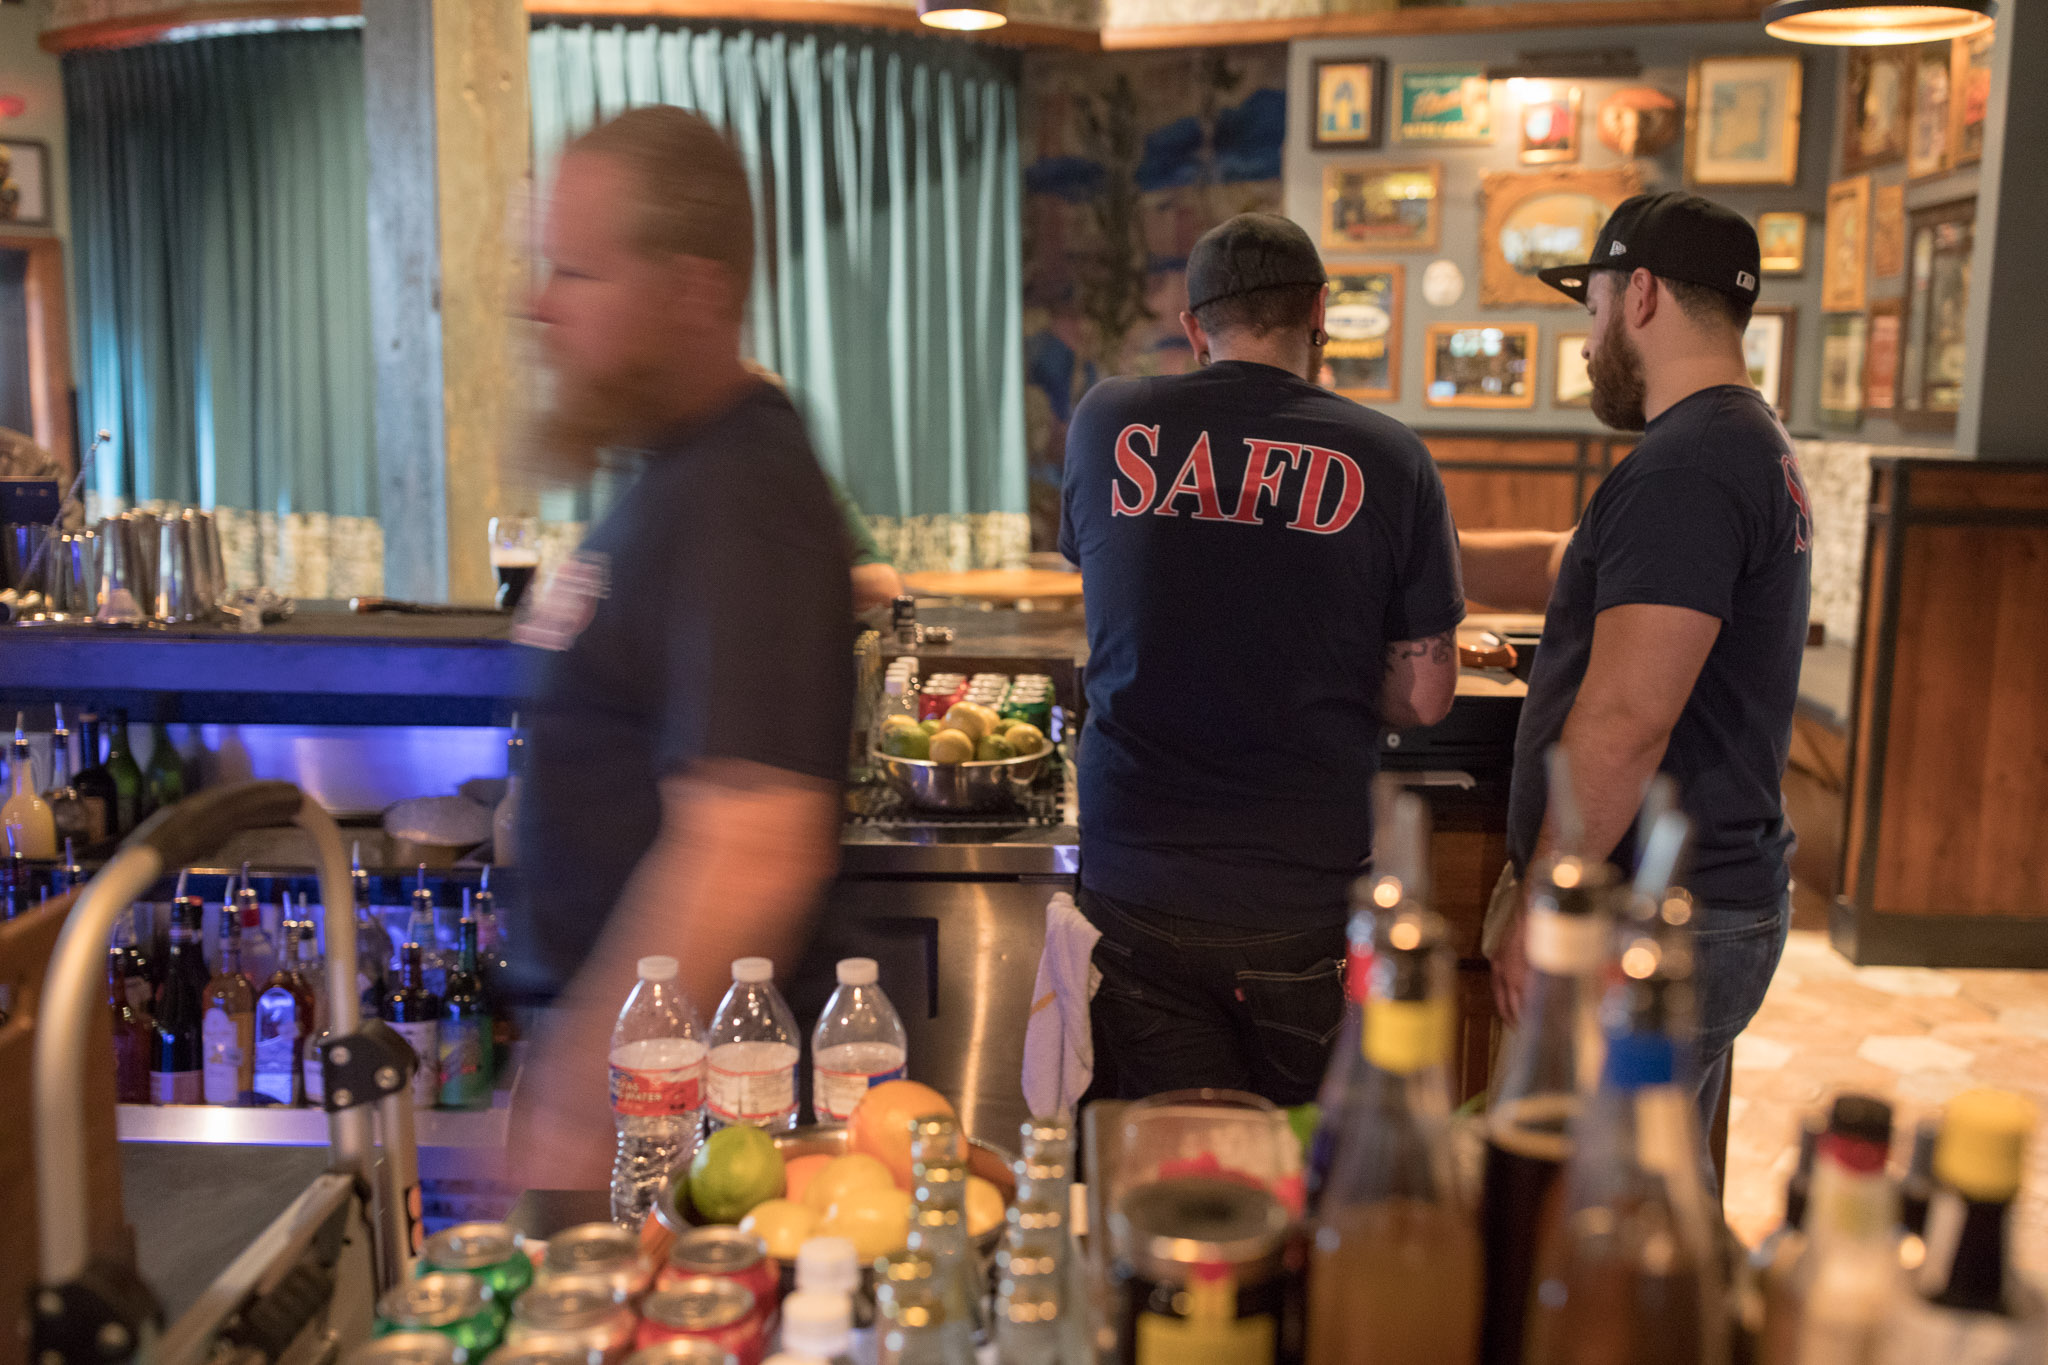 Francis Bogside employees wear SAFD shirts on the first day of reopening after a fire closed the popular pub down in 2016.